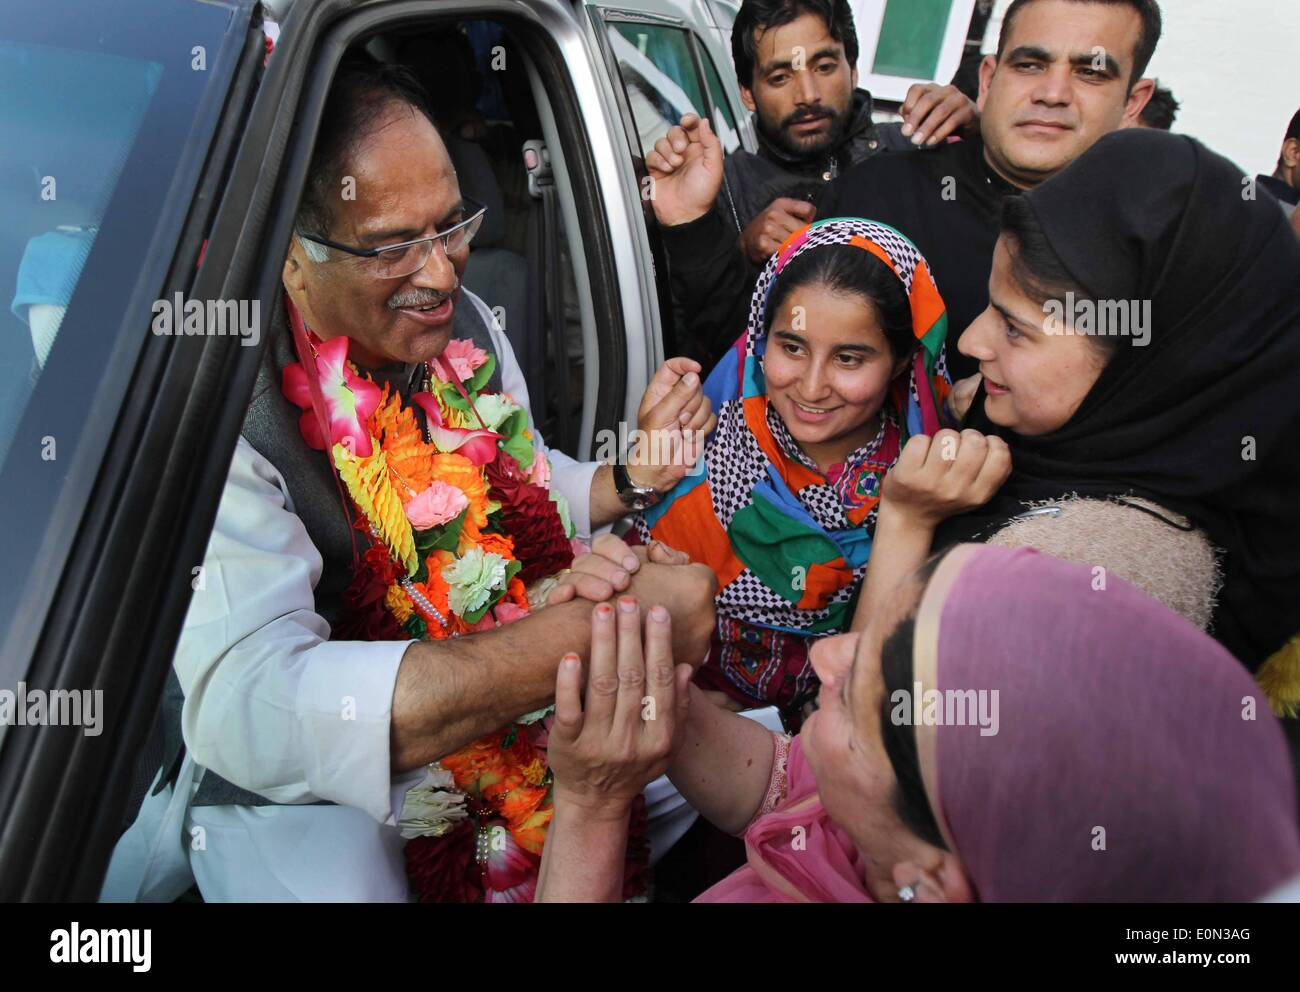 Srinagar, Indian-controlled Kashmir. 16th May, 2014. Supporters of Indian controlled Kashmir's main opposition party, Peoples Democratic Party (PDP), greet their party leader Tariq Hamid Kara after he was declared winner for a parliamentary seat, in Srinagar, the summer capital of Indian-controlled Kashmir, May 16, 2014. The region's main opposition Peoples Democratic Party (PDP) and right-wing Hindu nationalist Bhartiya Janta Party (BJP) Friday swept polls by winning three seats each in the region, officials said. Credit:  Javed Dar/Xinhua/Alamy Live News - Stock Image